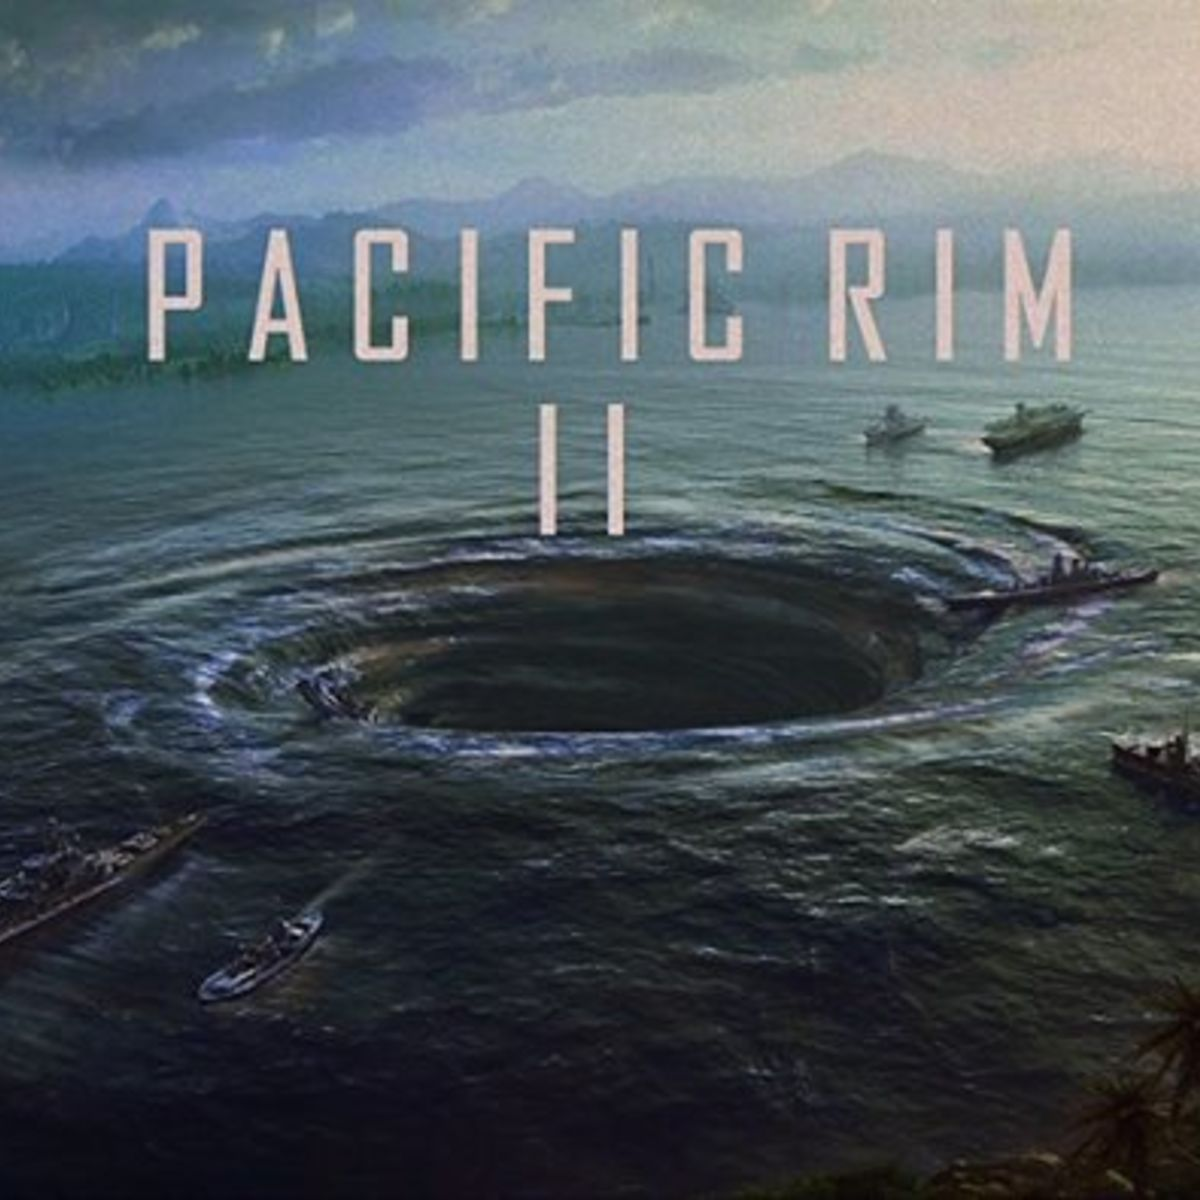 pacific-rim-2-teaser-poster-and-sequel-to-set-up-third-film.jpg